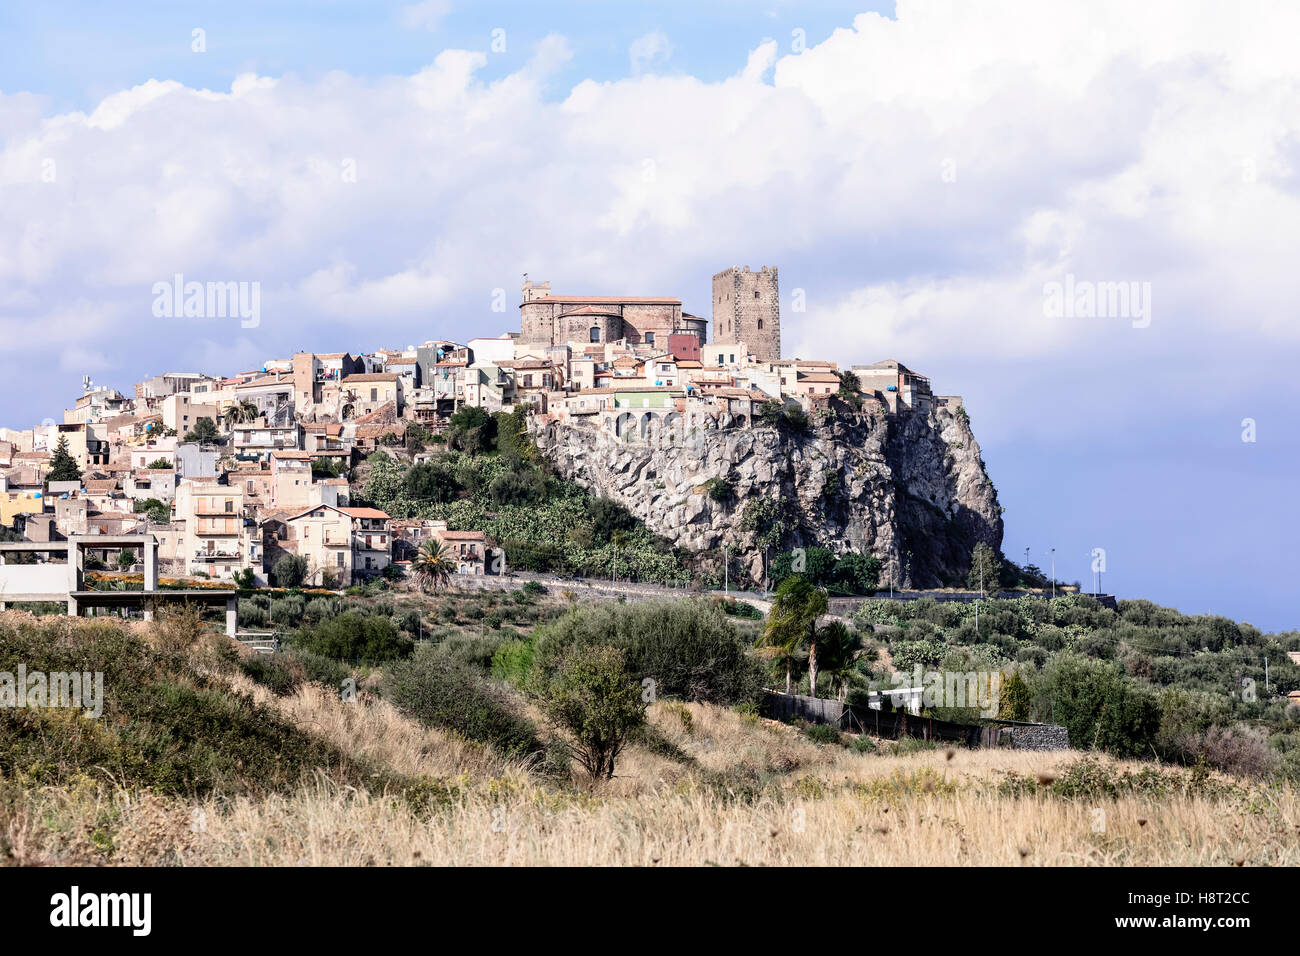 Motta stock photos motta stock images alamy for Motta arredi catania